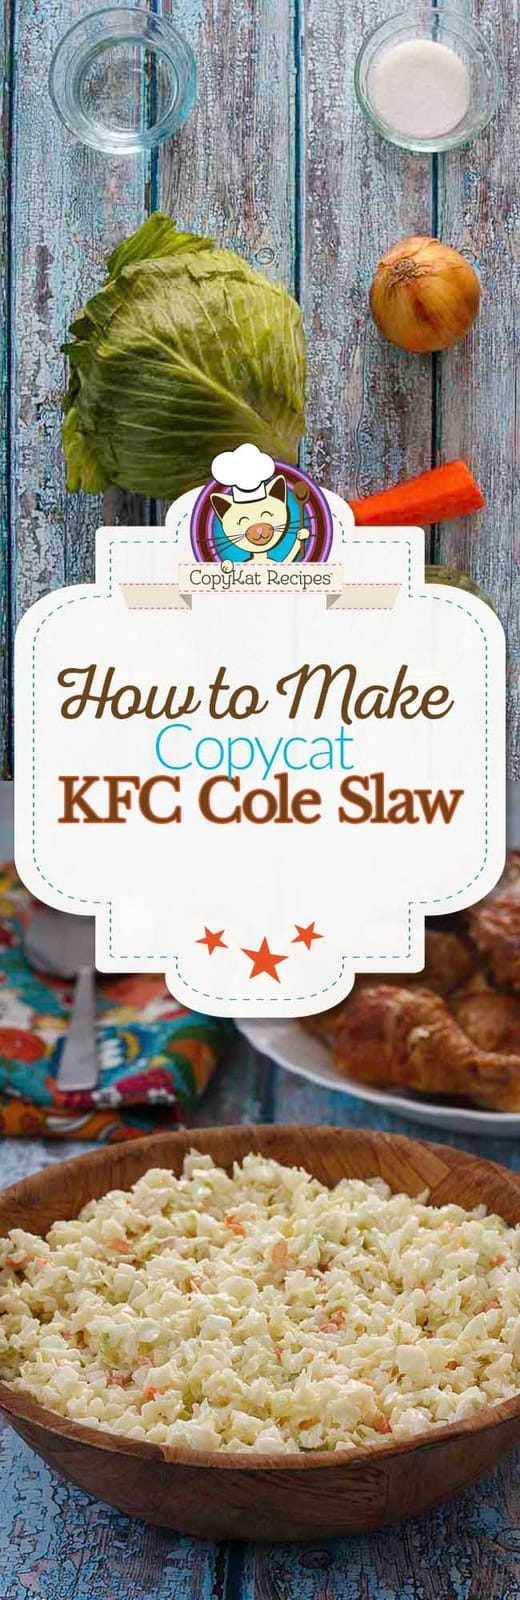 If you've ever had KFC Coleslaw you know it's some of the best coleslaw around. But this copycat recipe is even Better Than KFC Coleslaw!